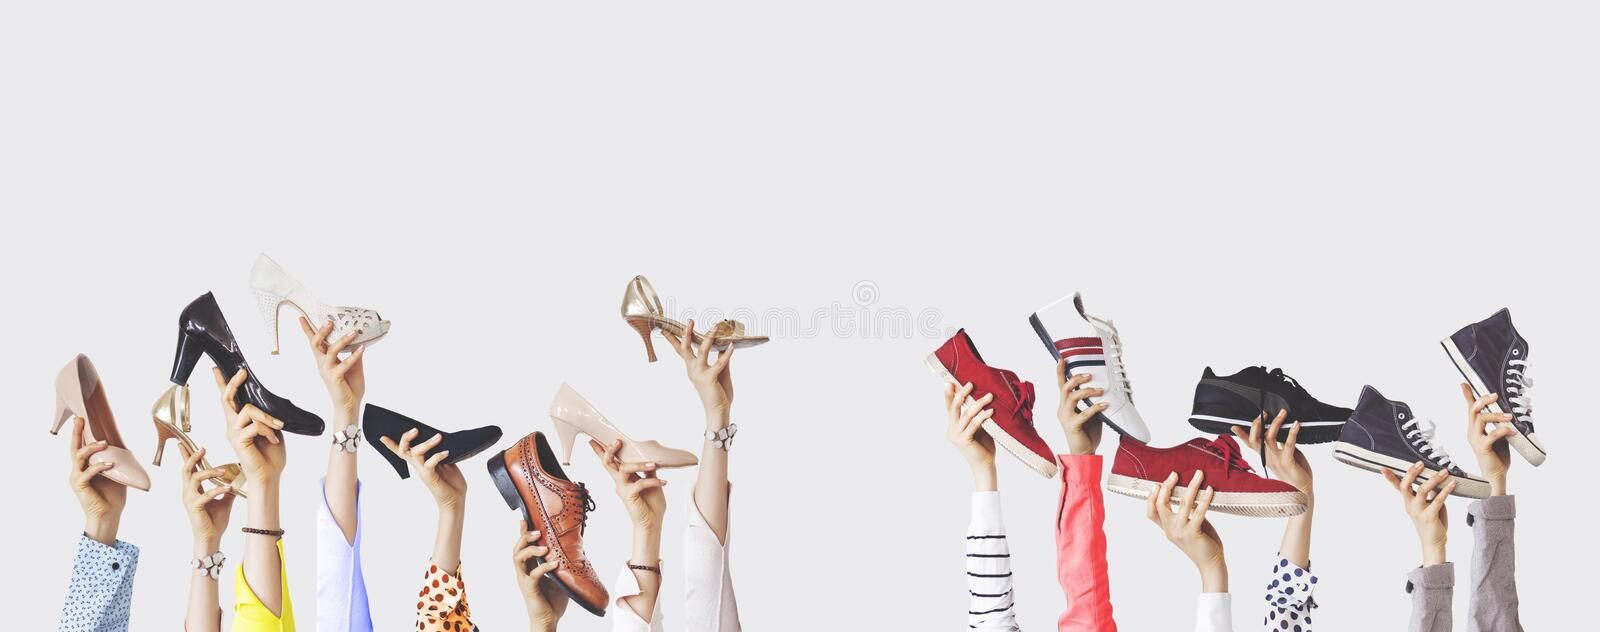 Hands holding different shoes on isolated background stock photo